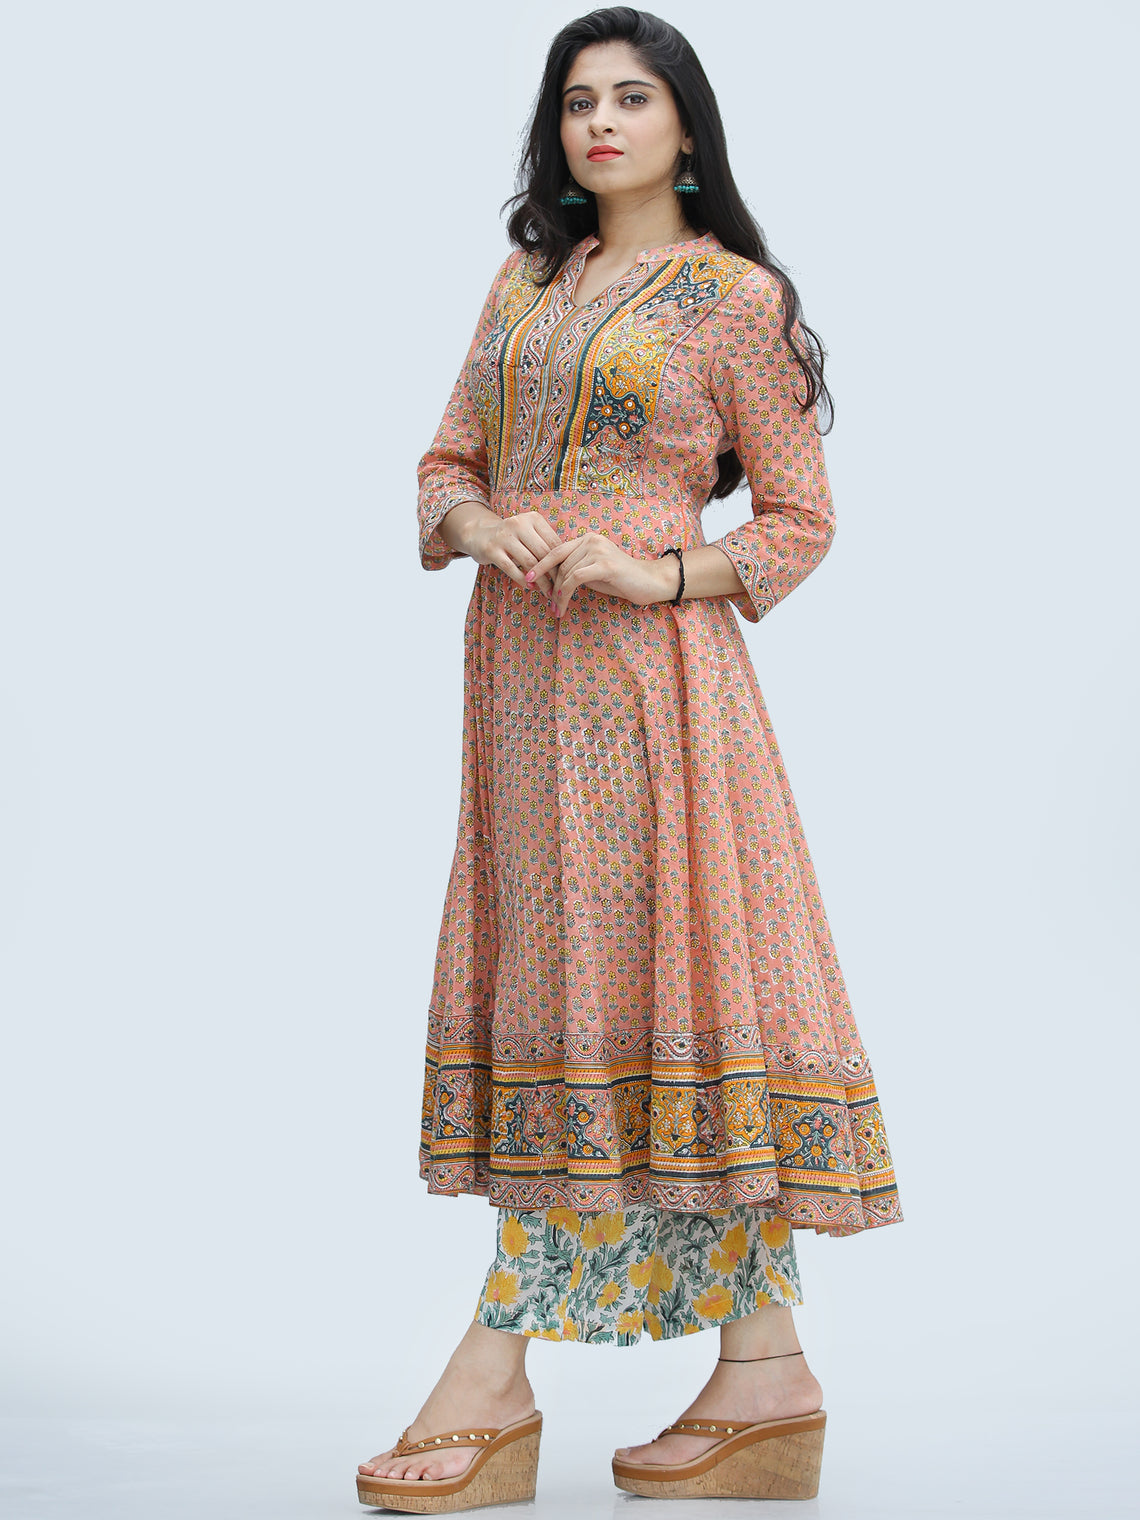 Rangrez Feiyaz - Set of Anarkali Kurta Palazzo & Dupatta - KS25E2312D